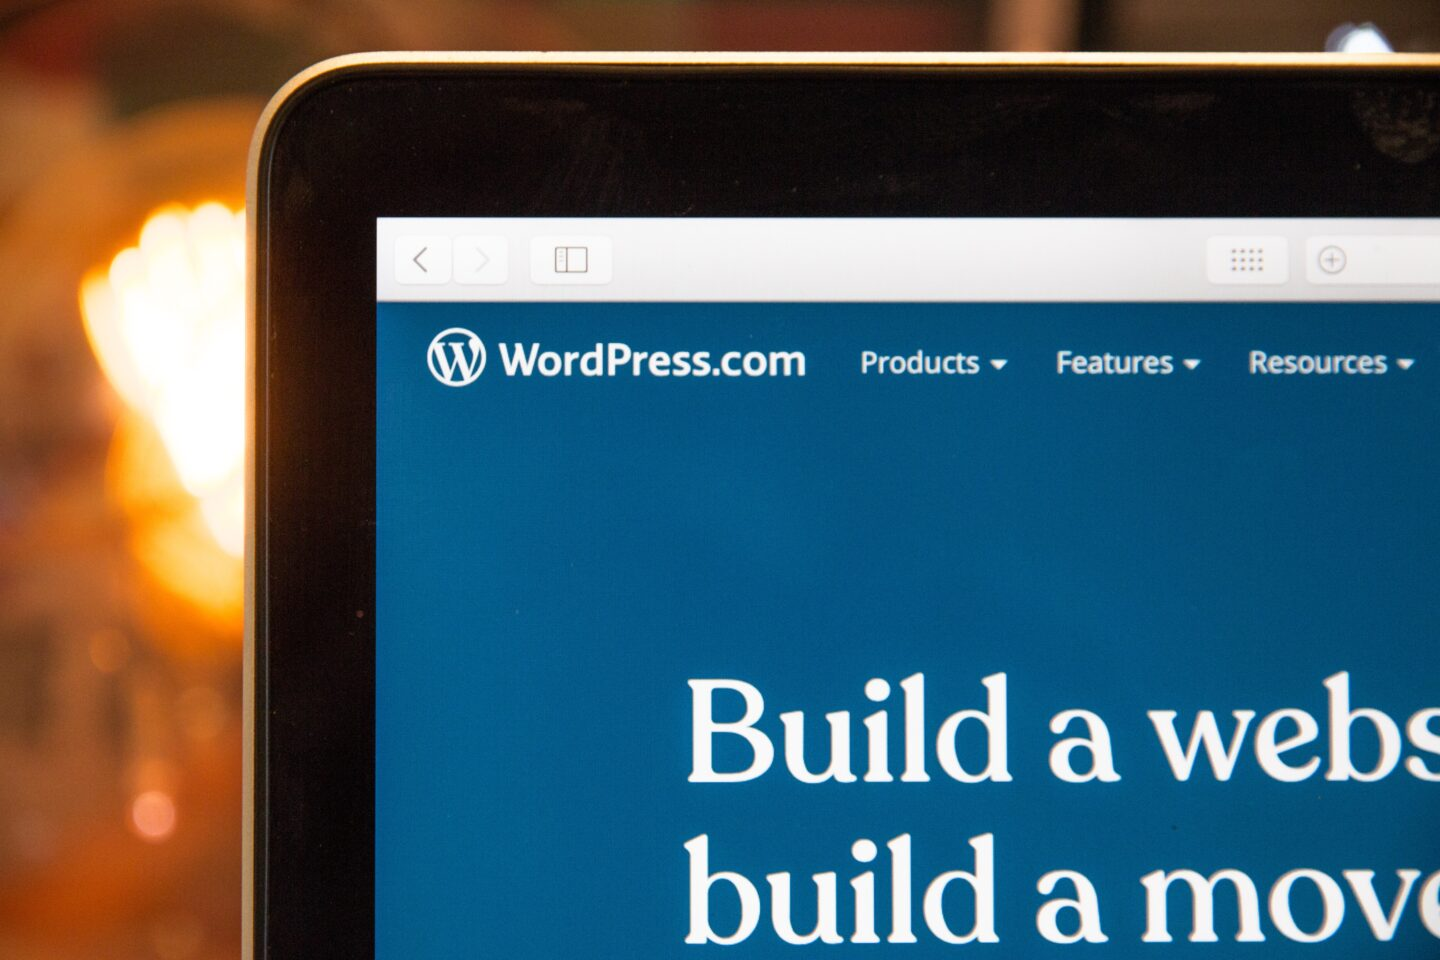 A laptop with WordPress main page